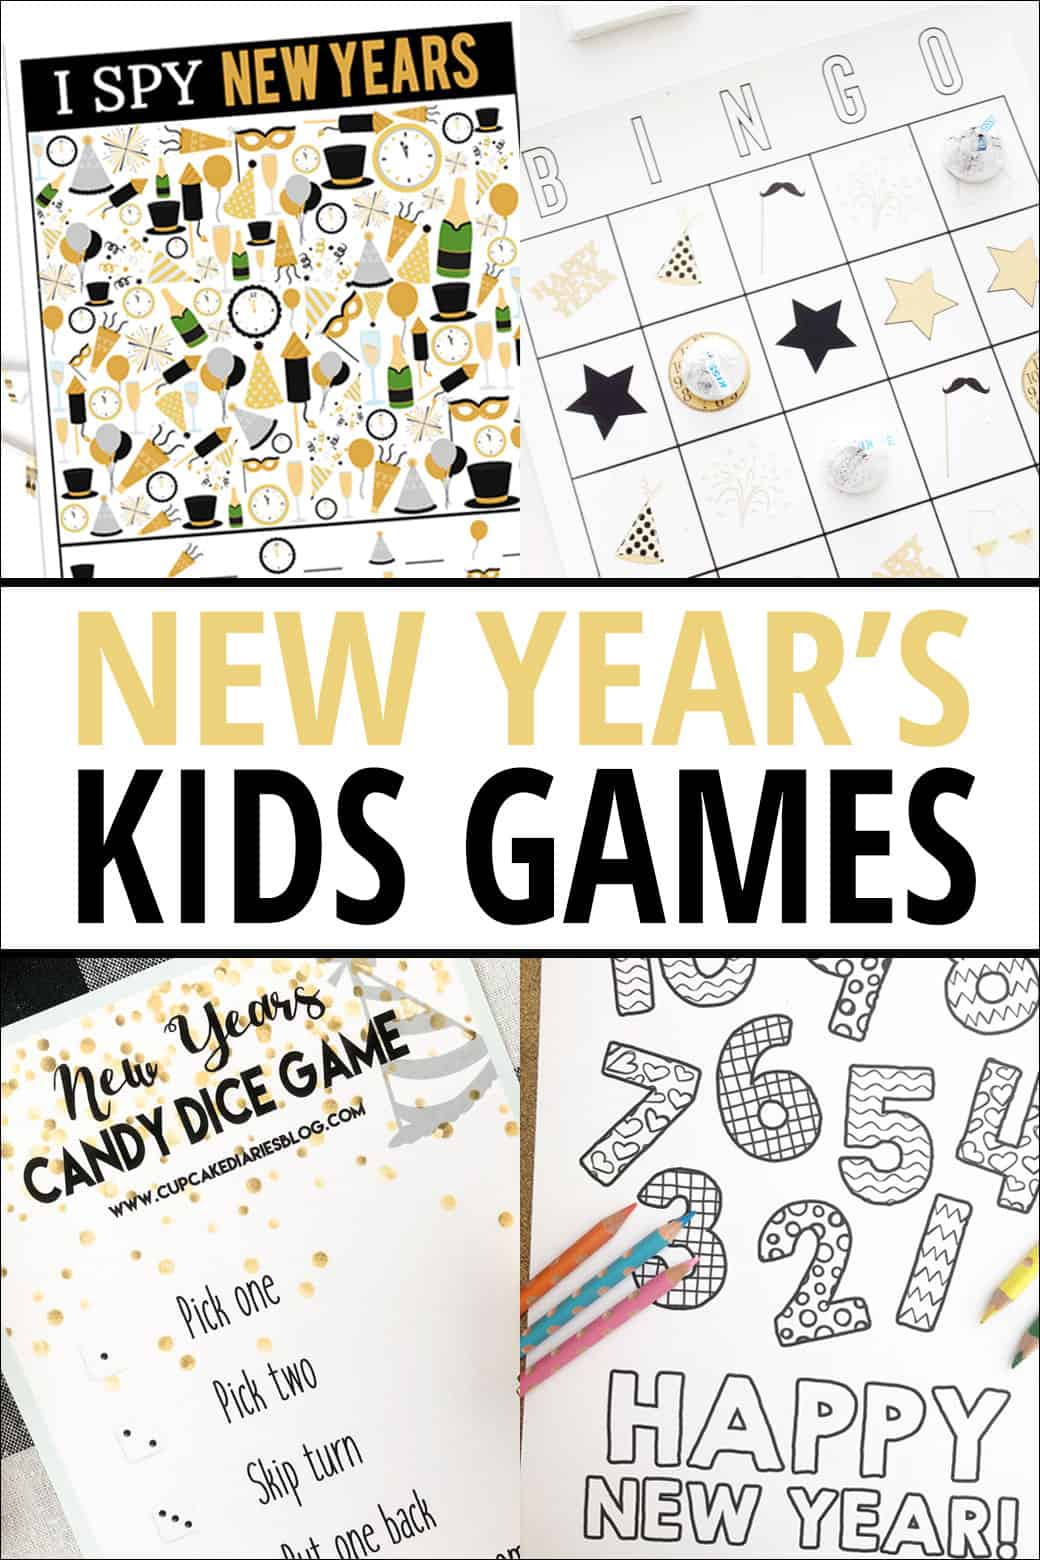 New Years Printable Games for Kids - these printable games are sure to make your family New Years Party even more fun! From overthebigmoon.com!